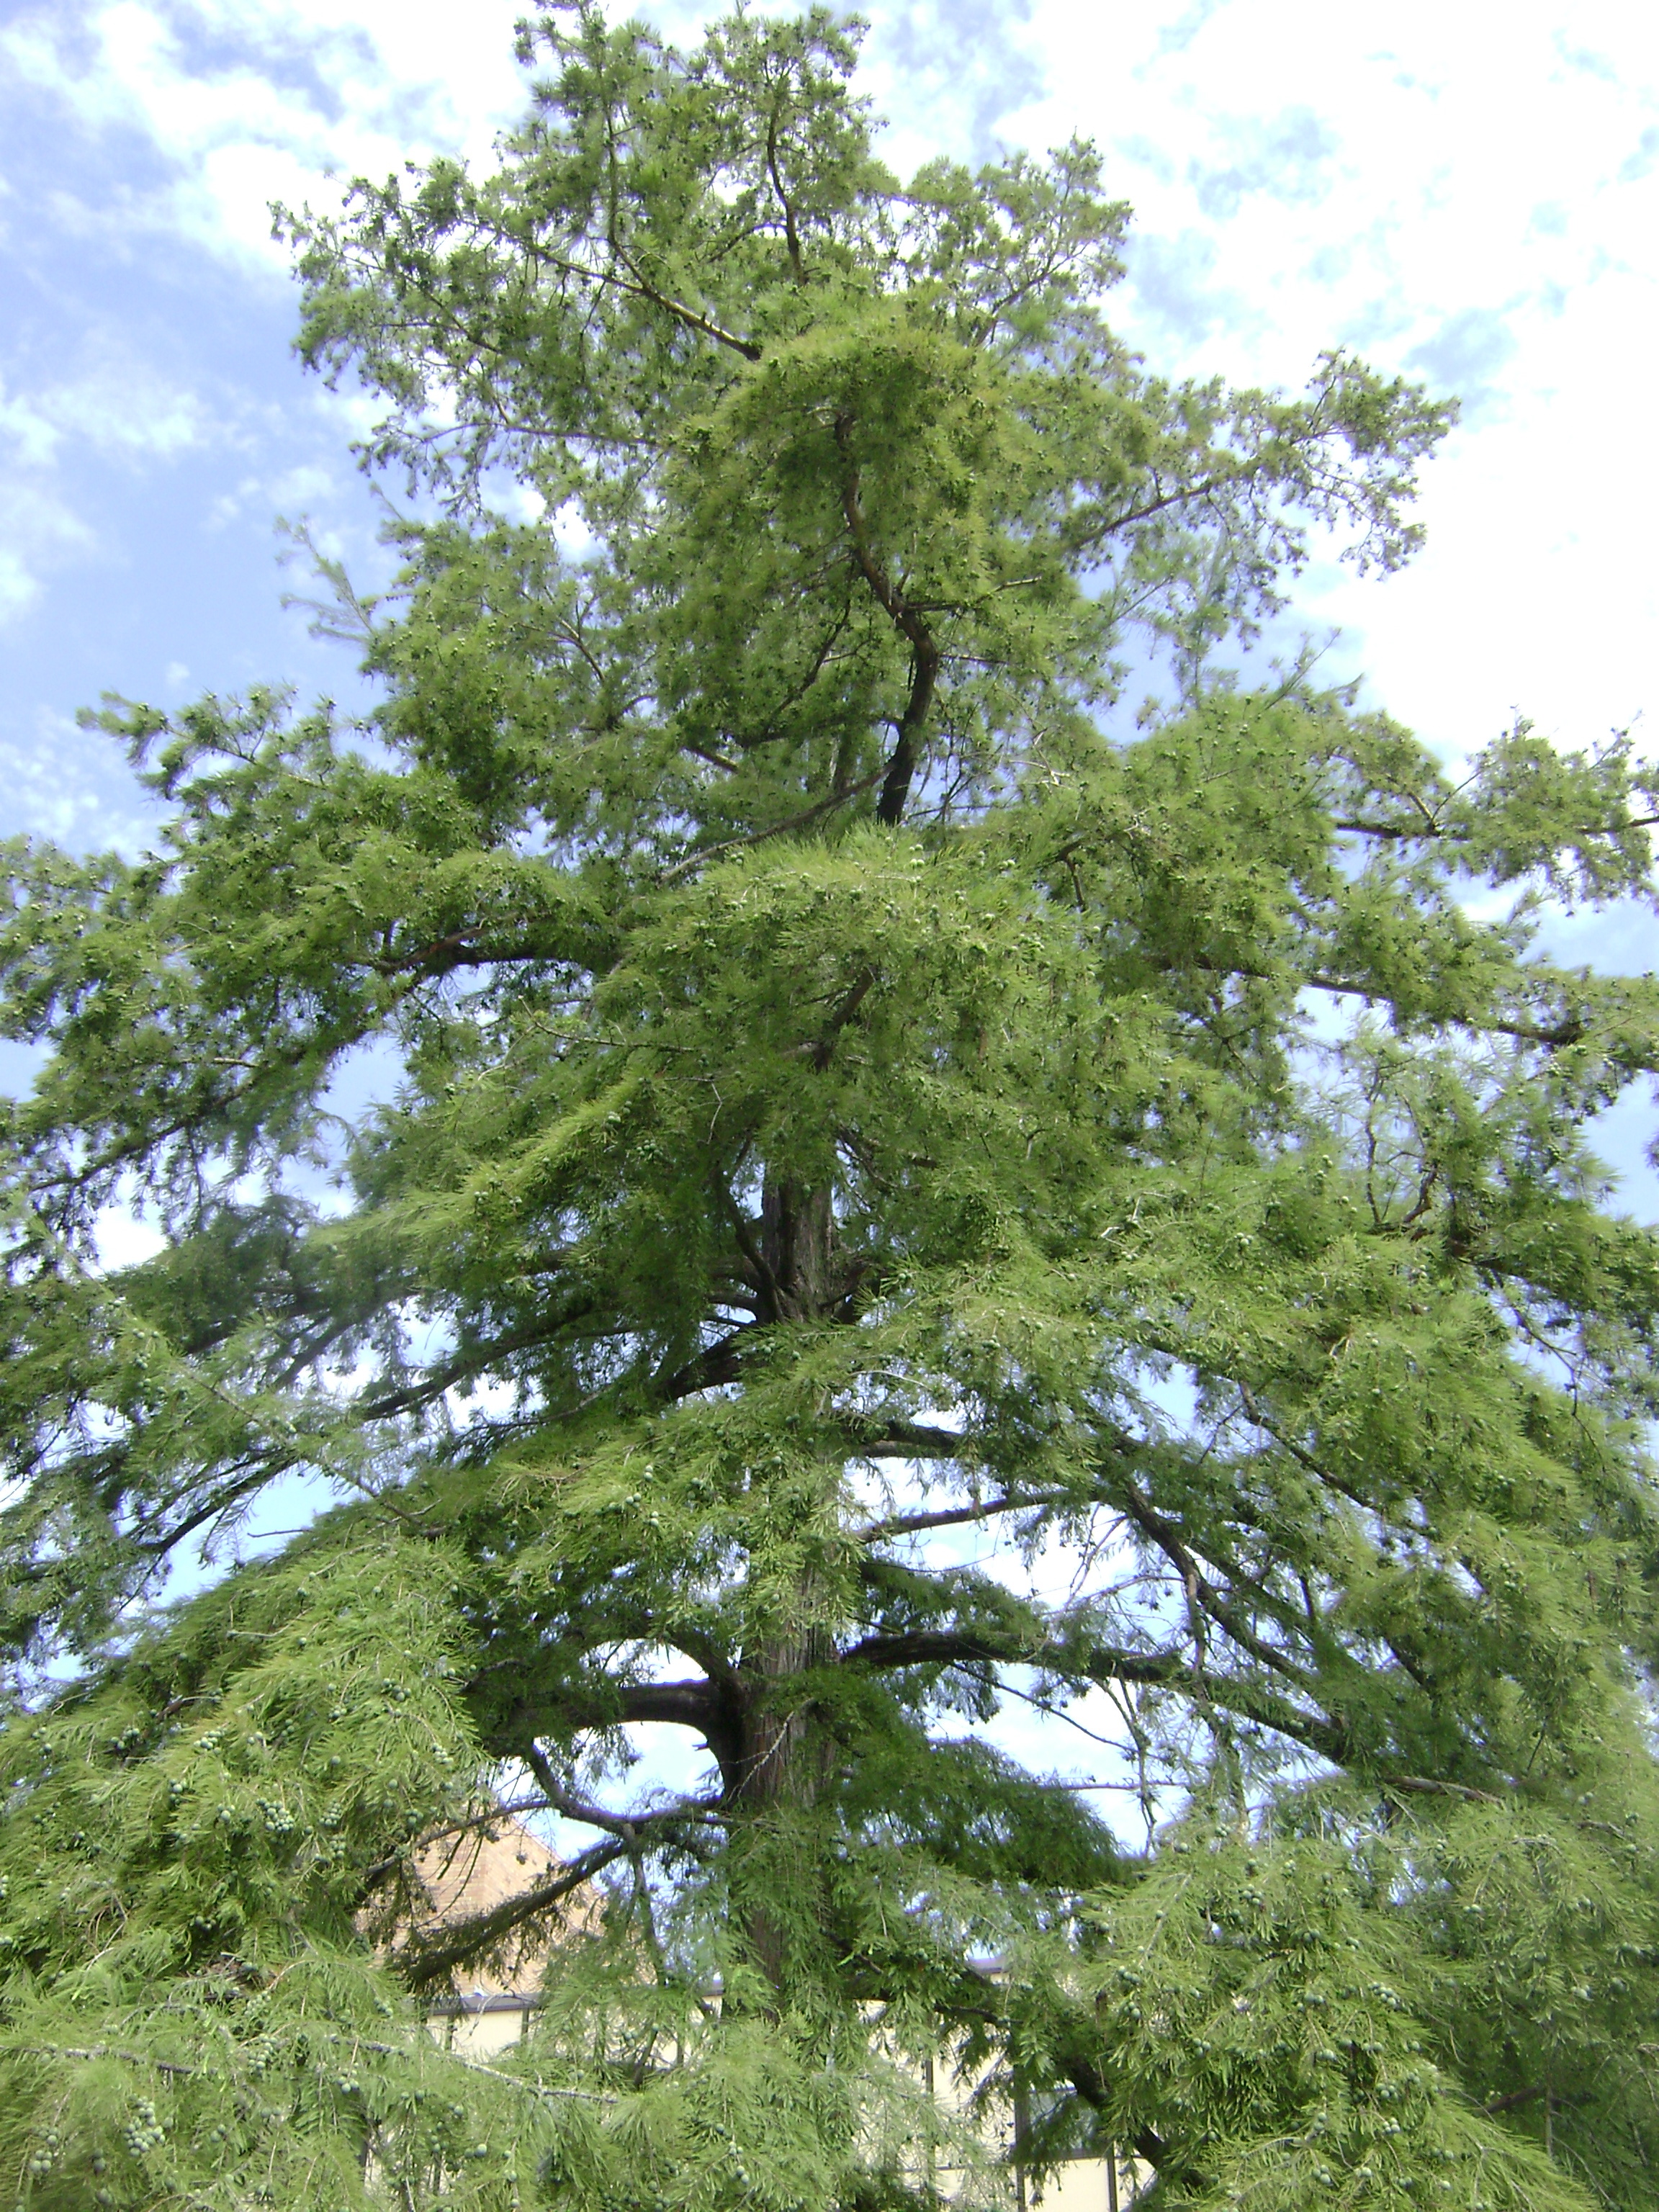 Photograph of the tree.